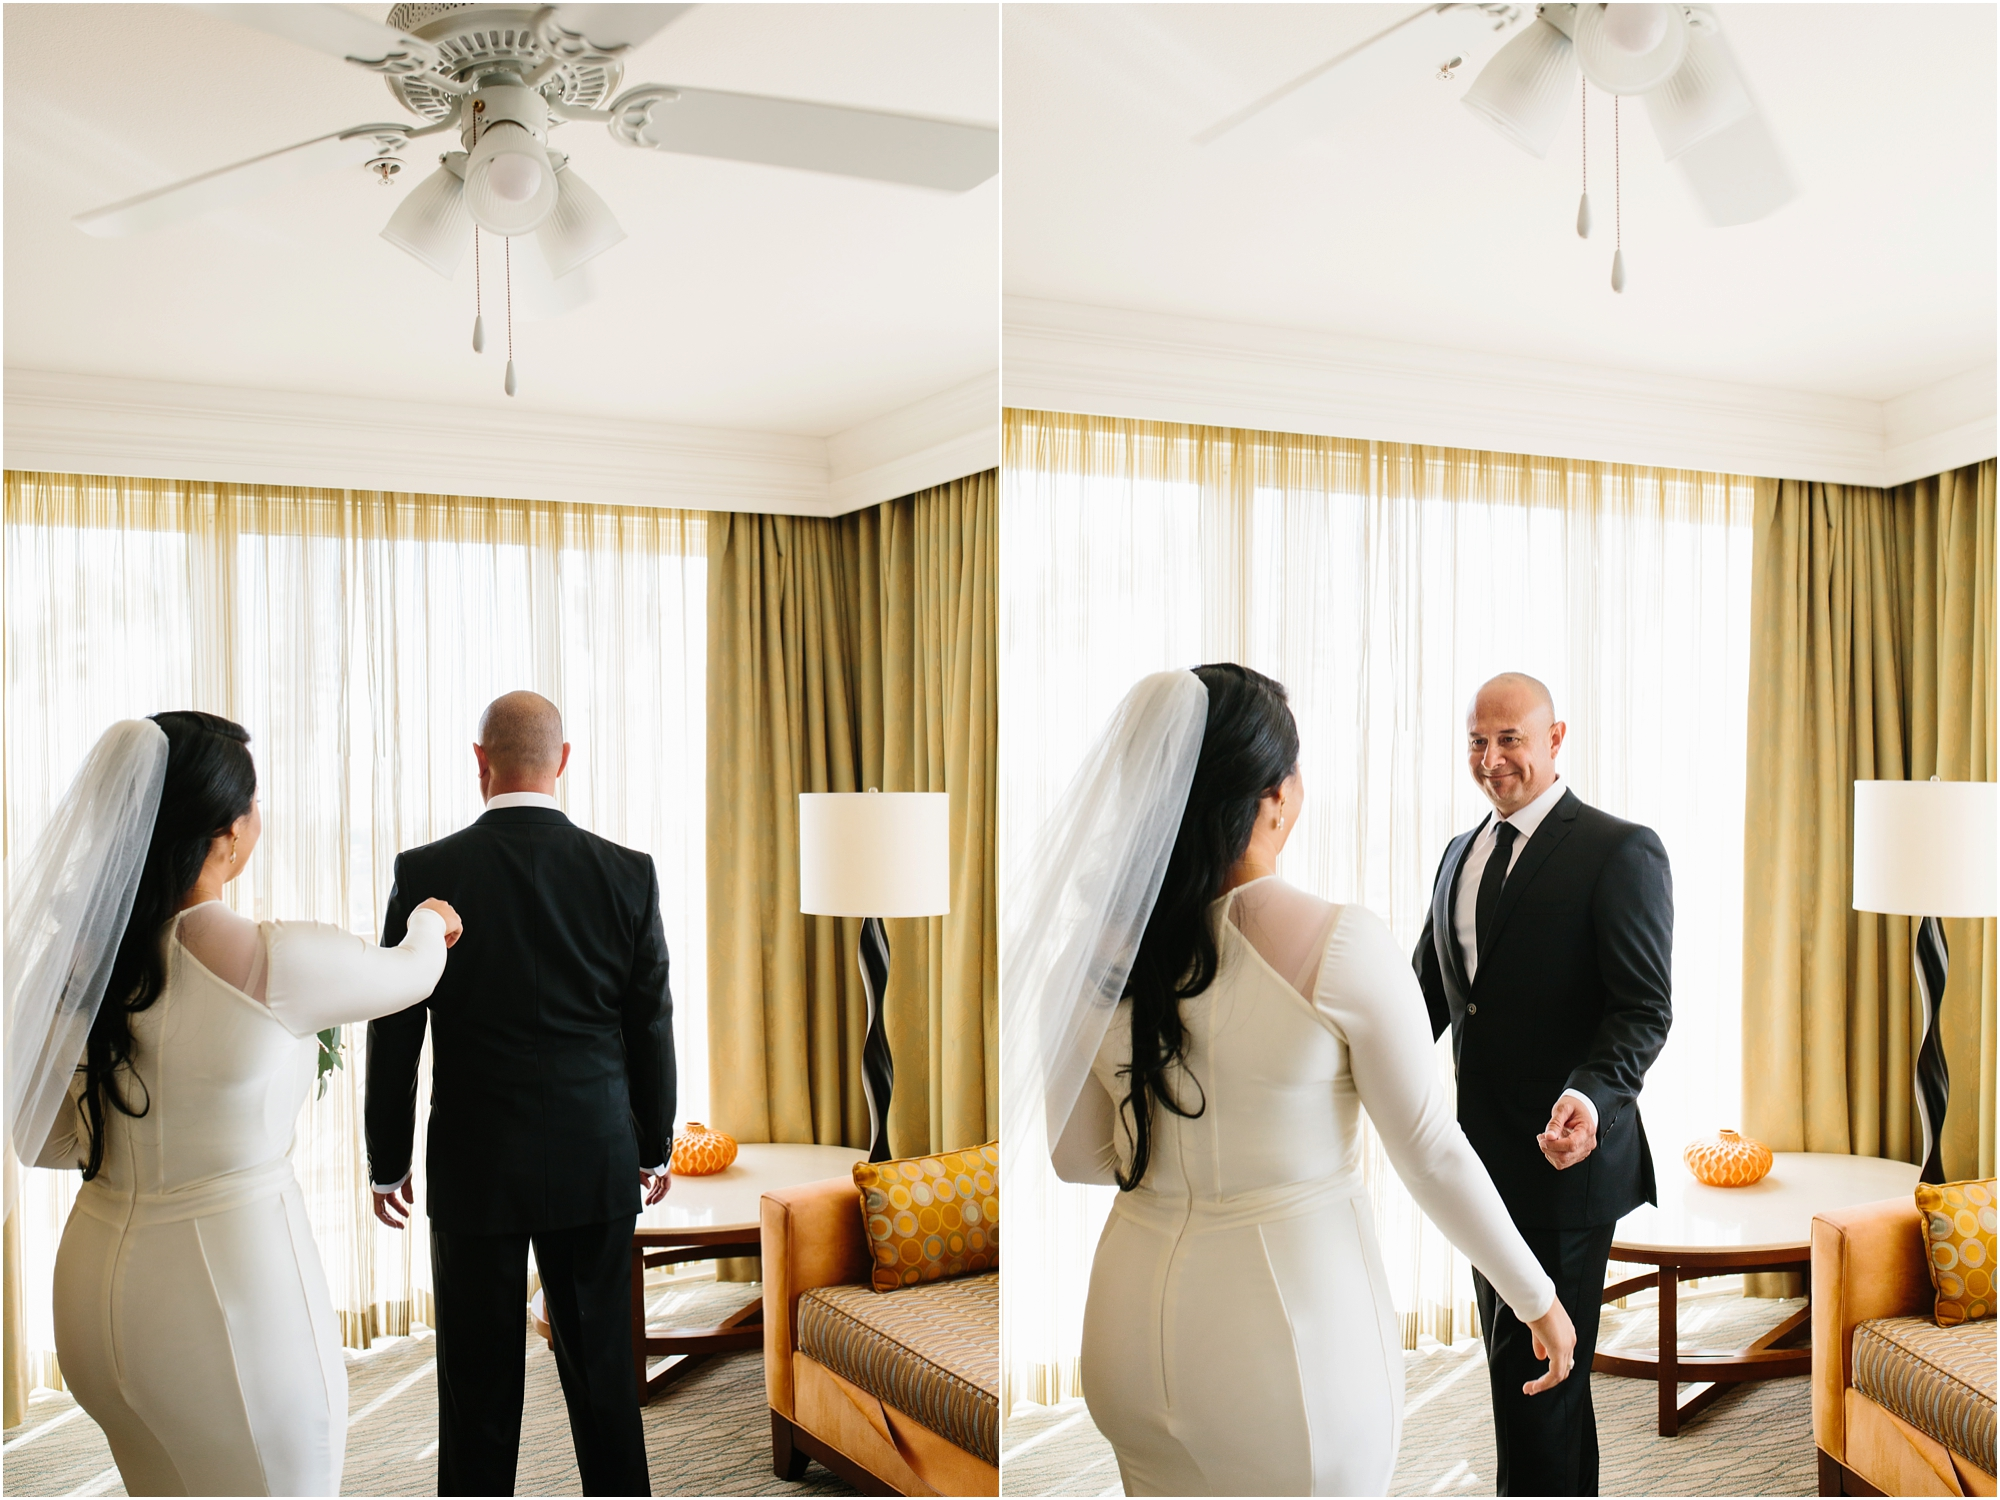 First Look with Dad - http://brittneyhannonphotography.com